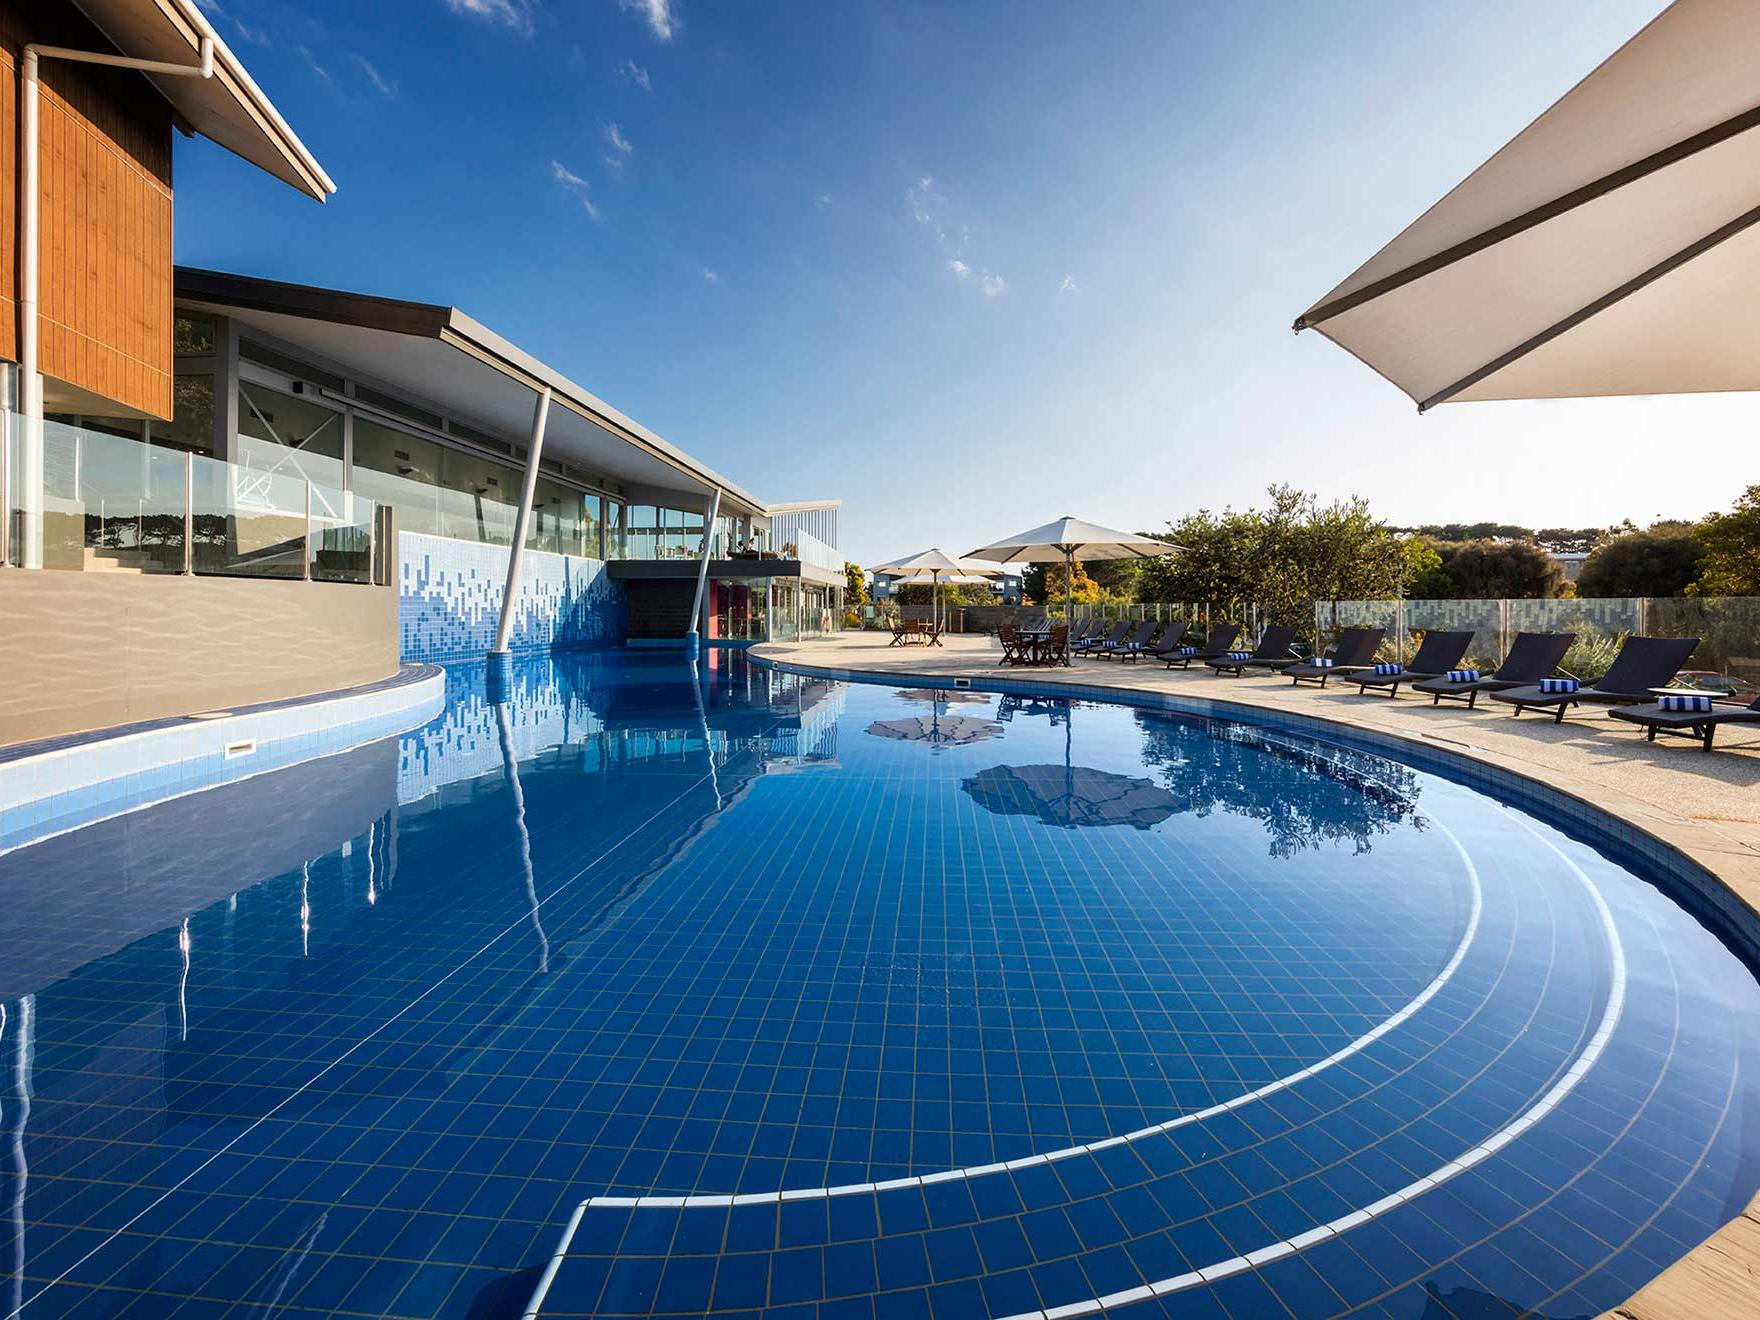 The solar-heated freeform outdoor pool at Silverwater Resort